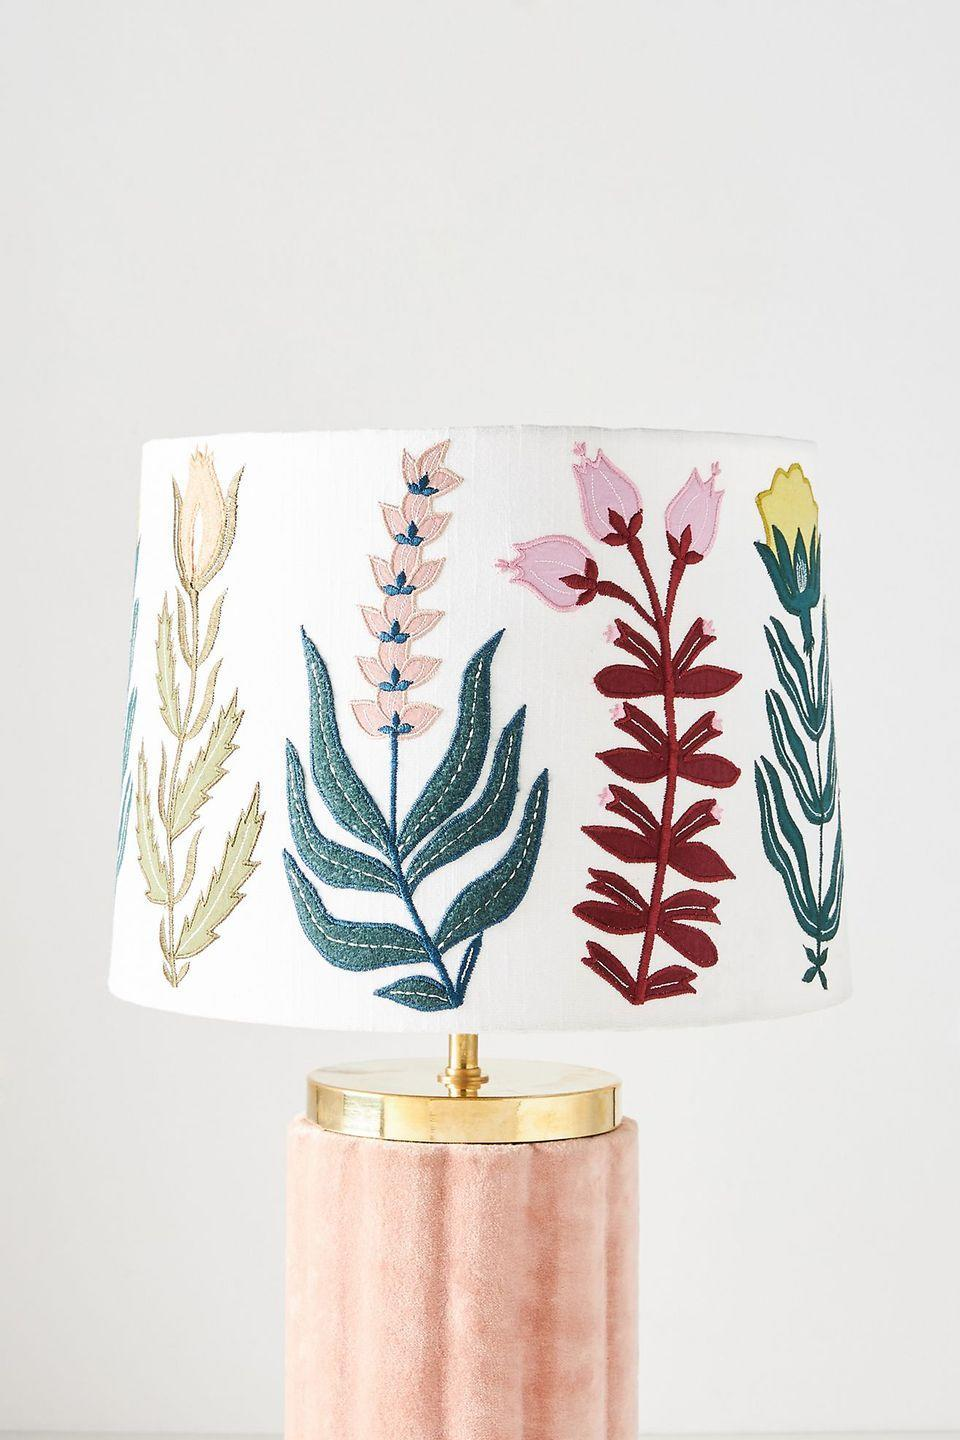 """<p>Adorned with embroidered floral motifs that play over the pure cotton shade, this Anthropologie design will transform any lamp base into a feature piece. We think it's perfect on a plain pink or white base to let the colourful pattern shine. </p><p><strong>Shop now: <a href=""""https://www.anthropologie.com/en-gb/shop/embroidered-celise-lamp-shade?category=home-lighting&color=000&type=REGULAR&quantity=1"""" rel=""""nofollow noopener"""" target=""""_blank"""" data-ylk=""""slk:Embroidered Celise Lampshade at Anthropologie"""" class=""""link rapid-noclick-resp"""">Embroidered Celise Lampshade at Anthropologie</a></strong></p>"""